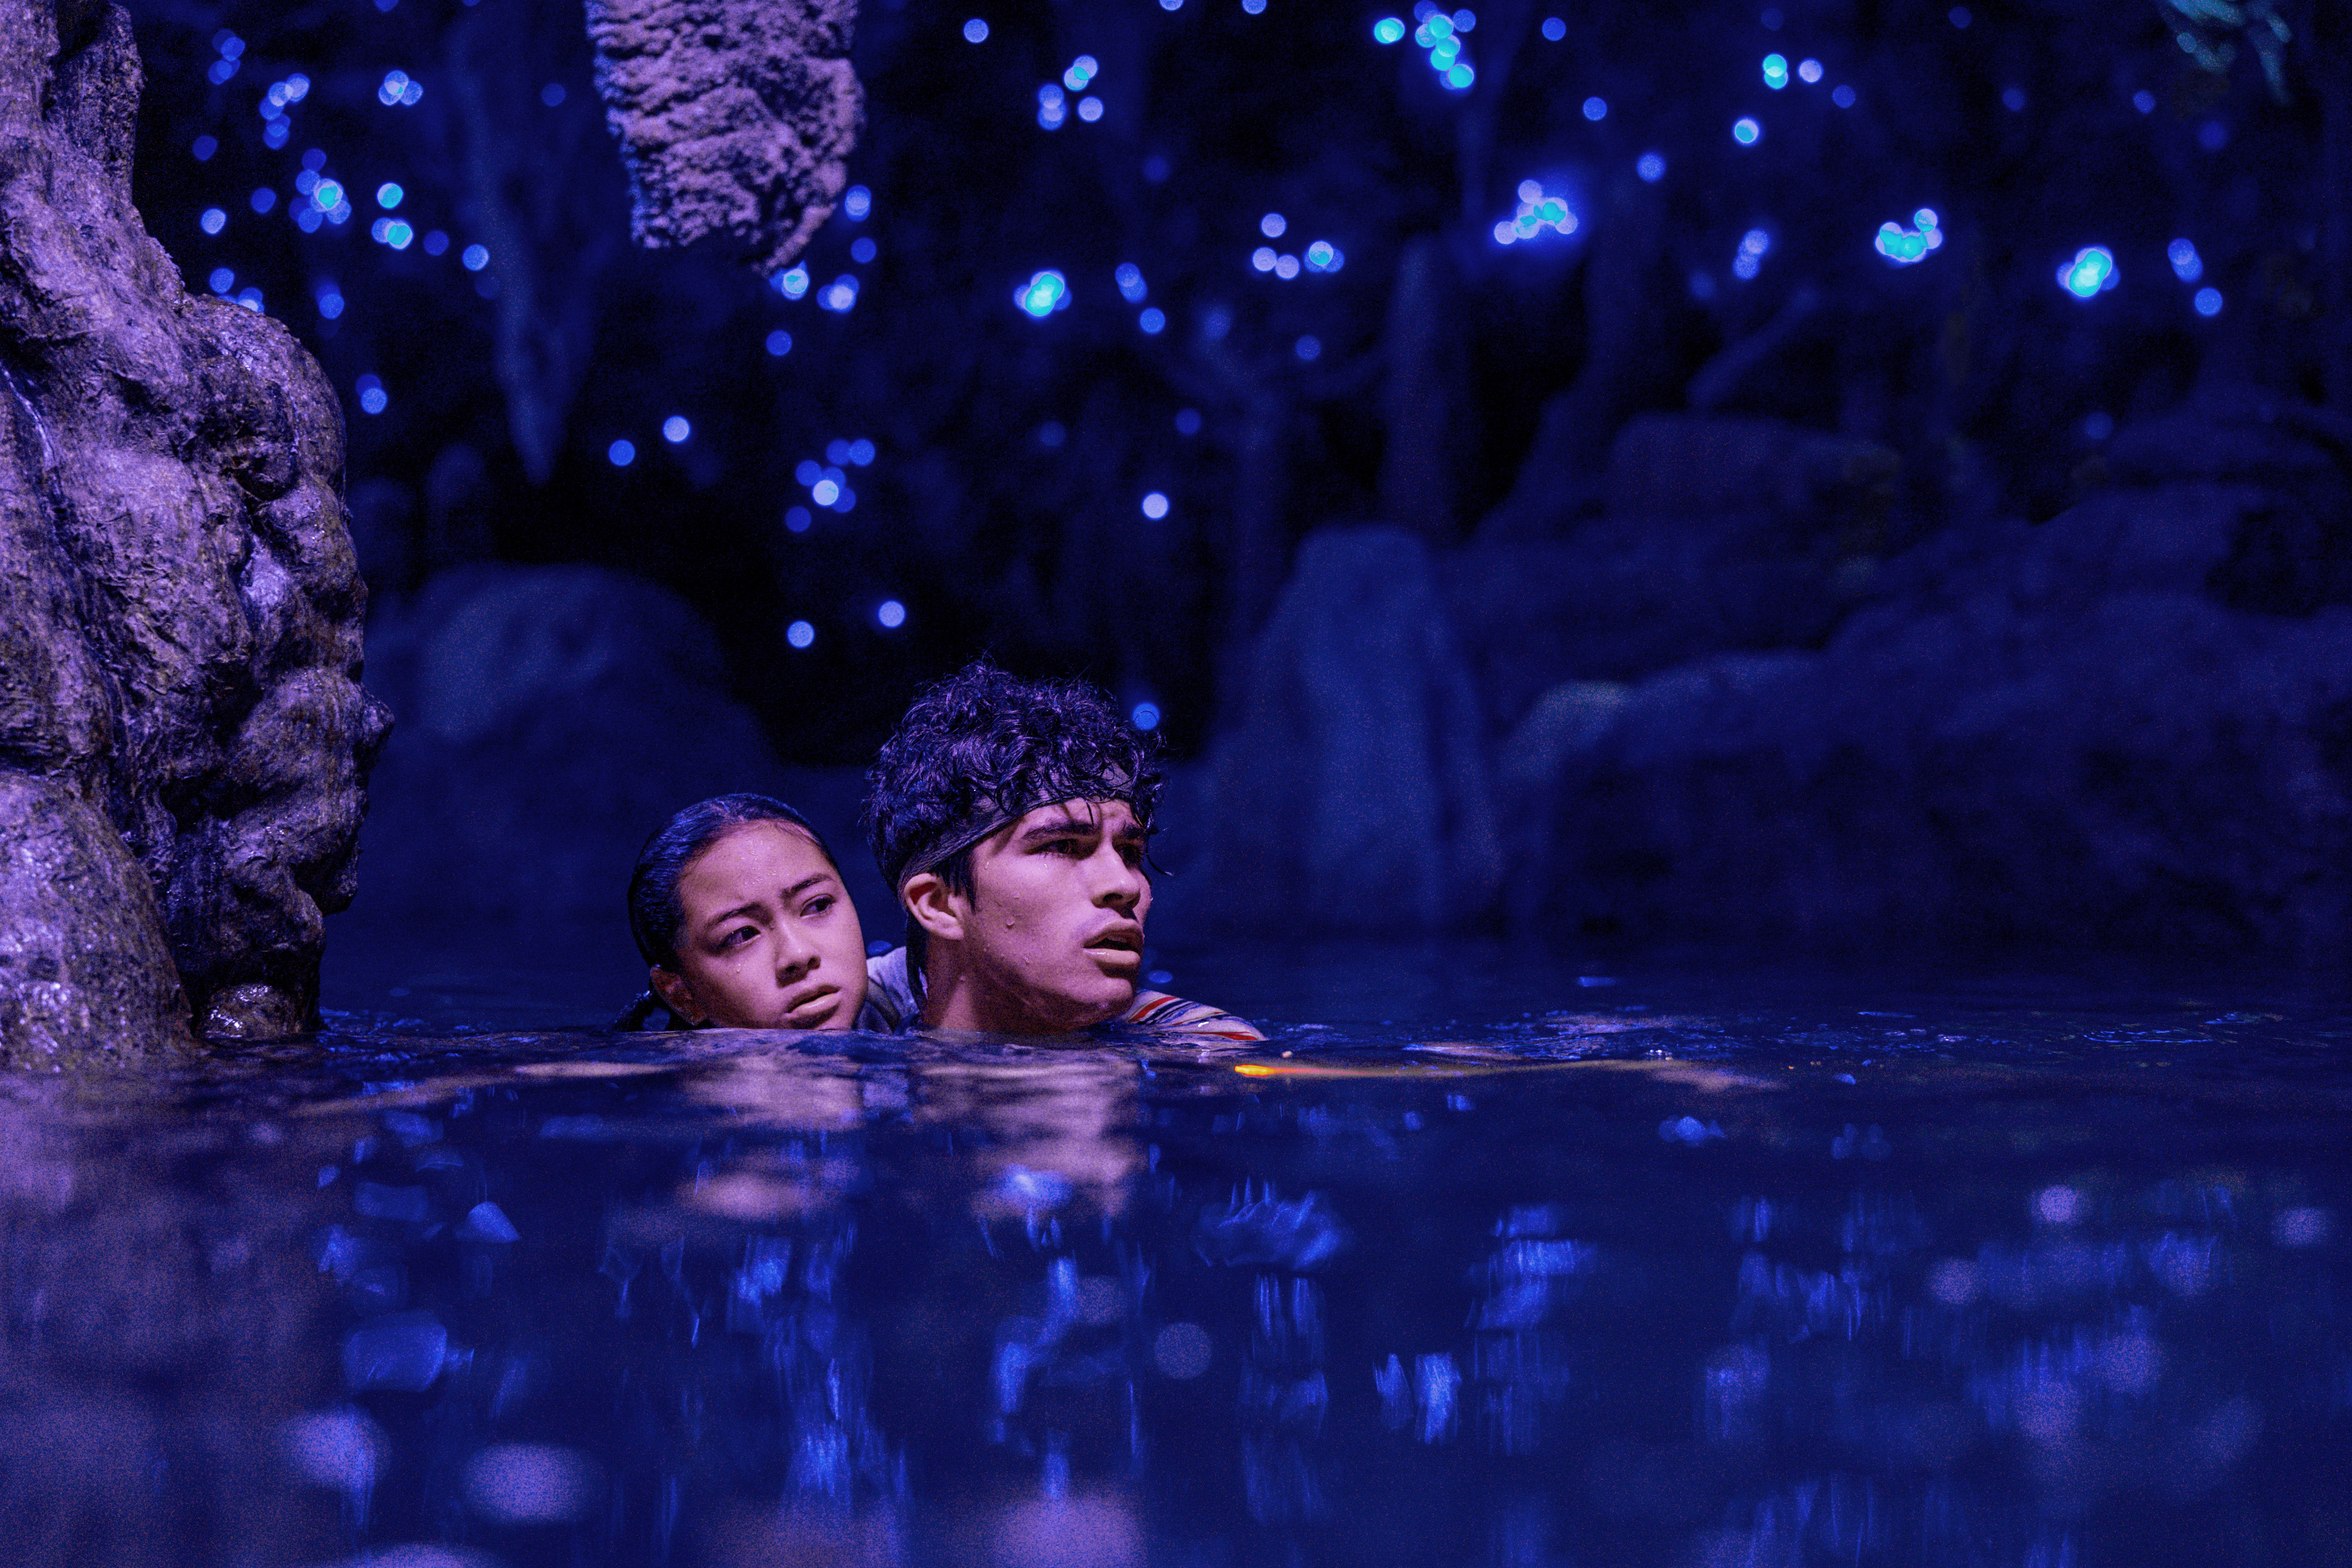 KEA PEAHU as PILI, ALEX AIONO as E in FINDING 'OHANA. Pili holds on to E as the swim in water in a luminescent cave.